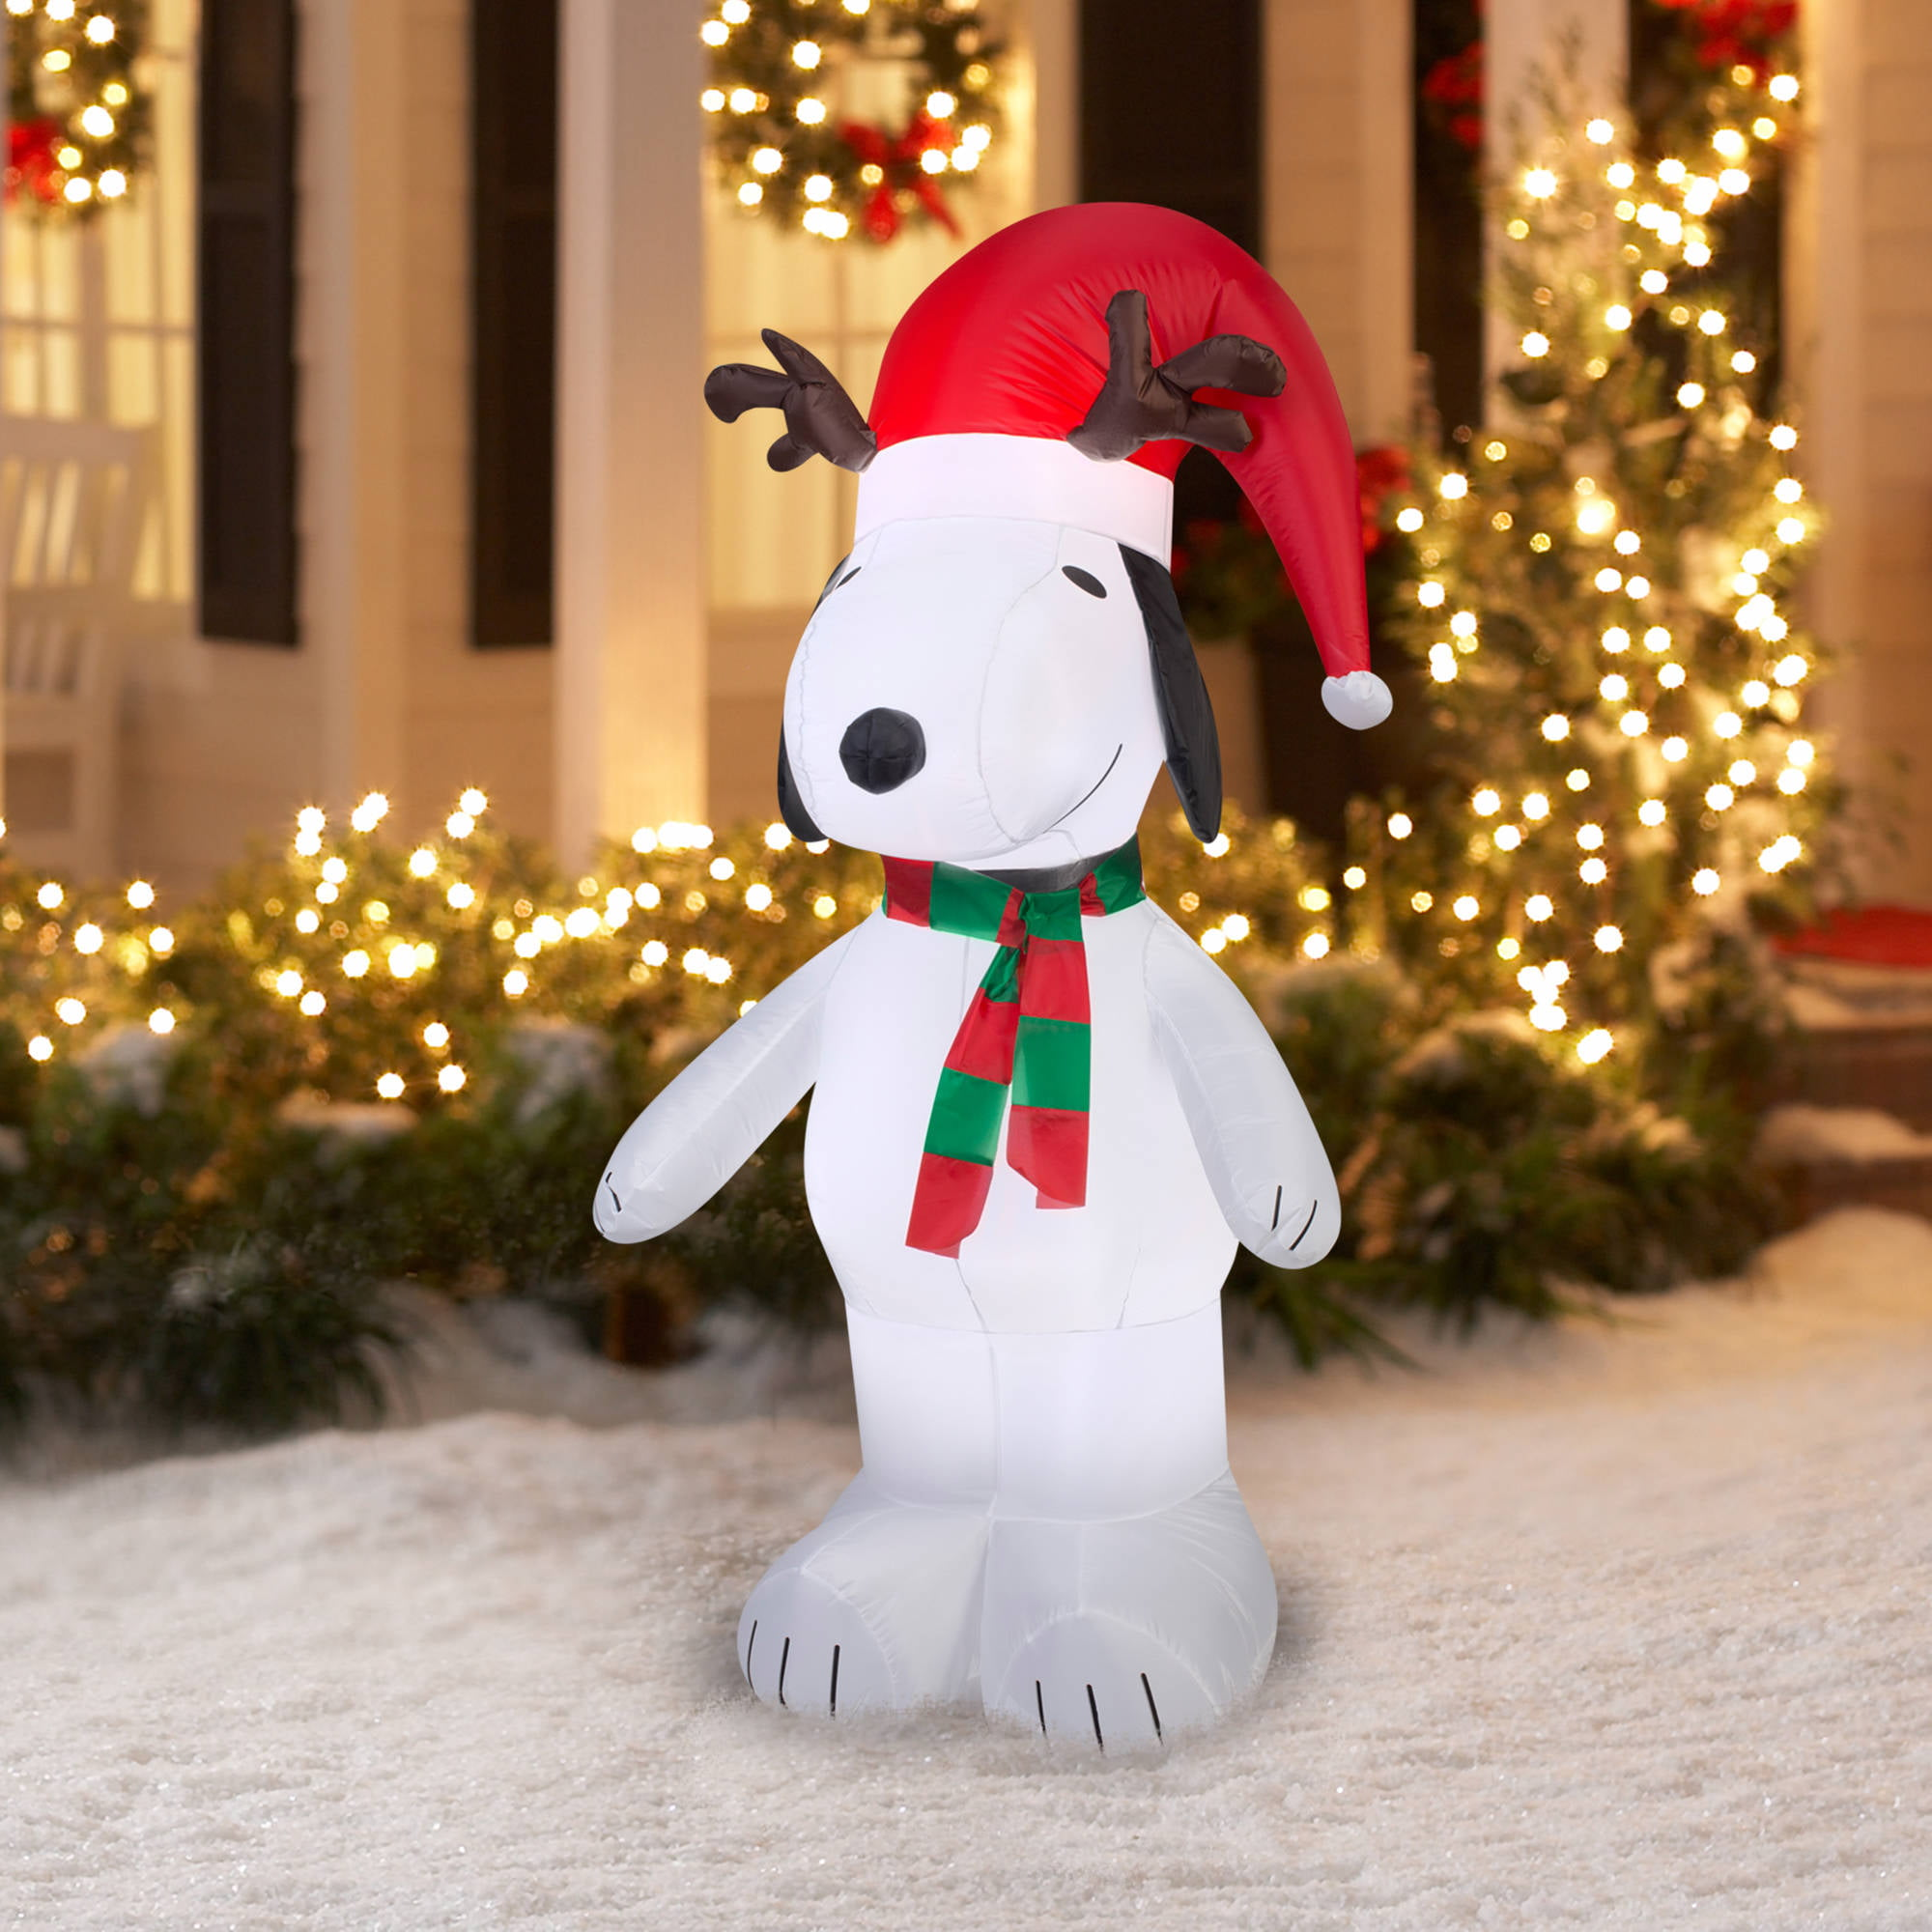 5 airblown inflatable snoopy with antlers and santa hat christmas inflatable walmartcom - Snoopy Outdoor Christmas Decorations